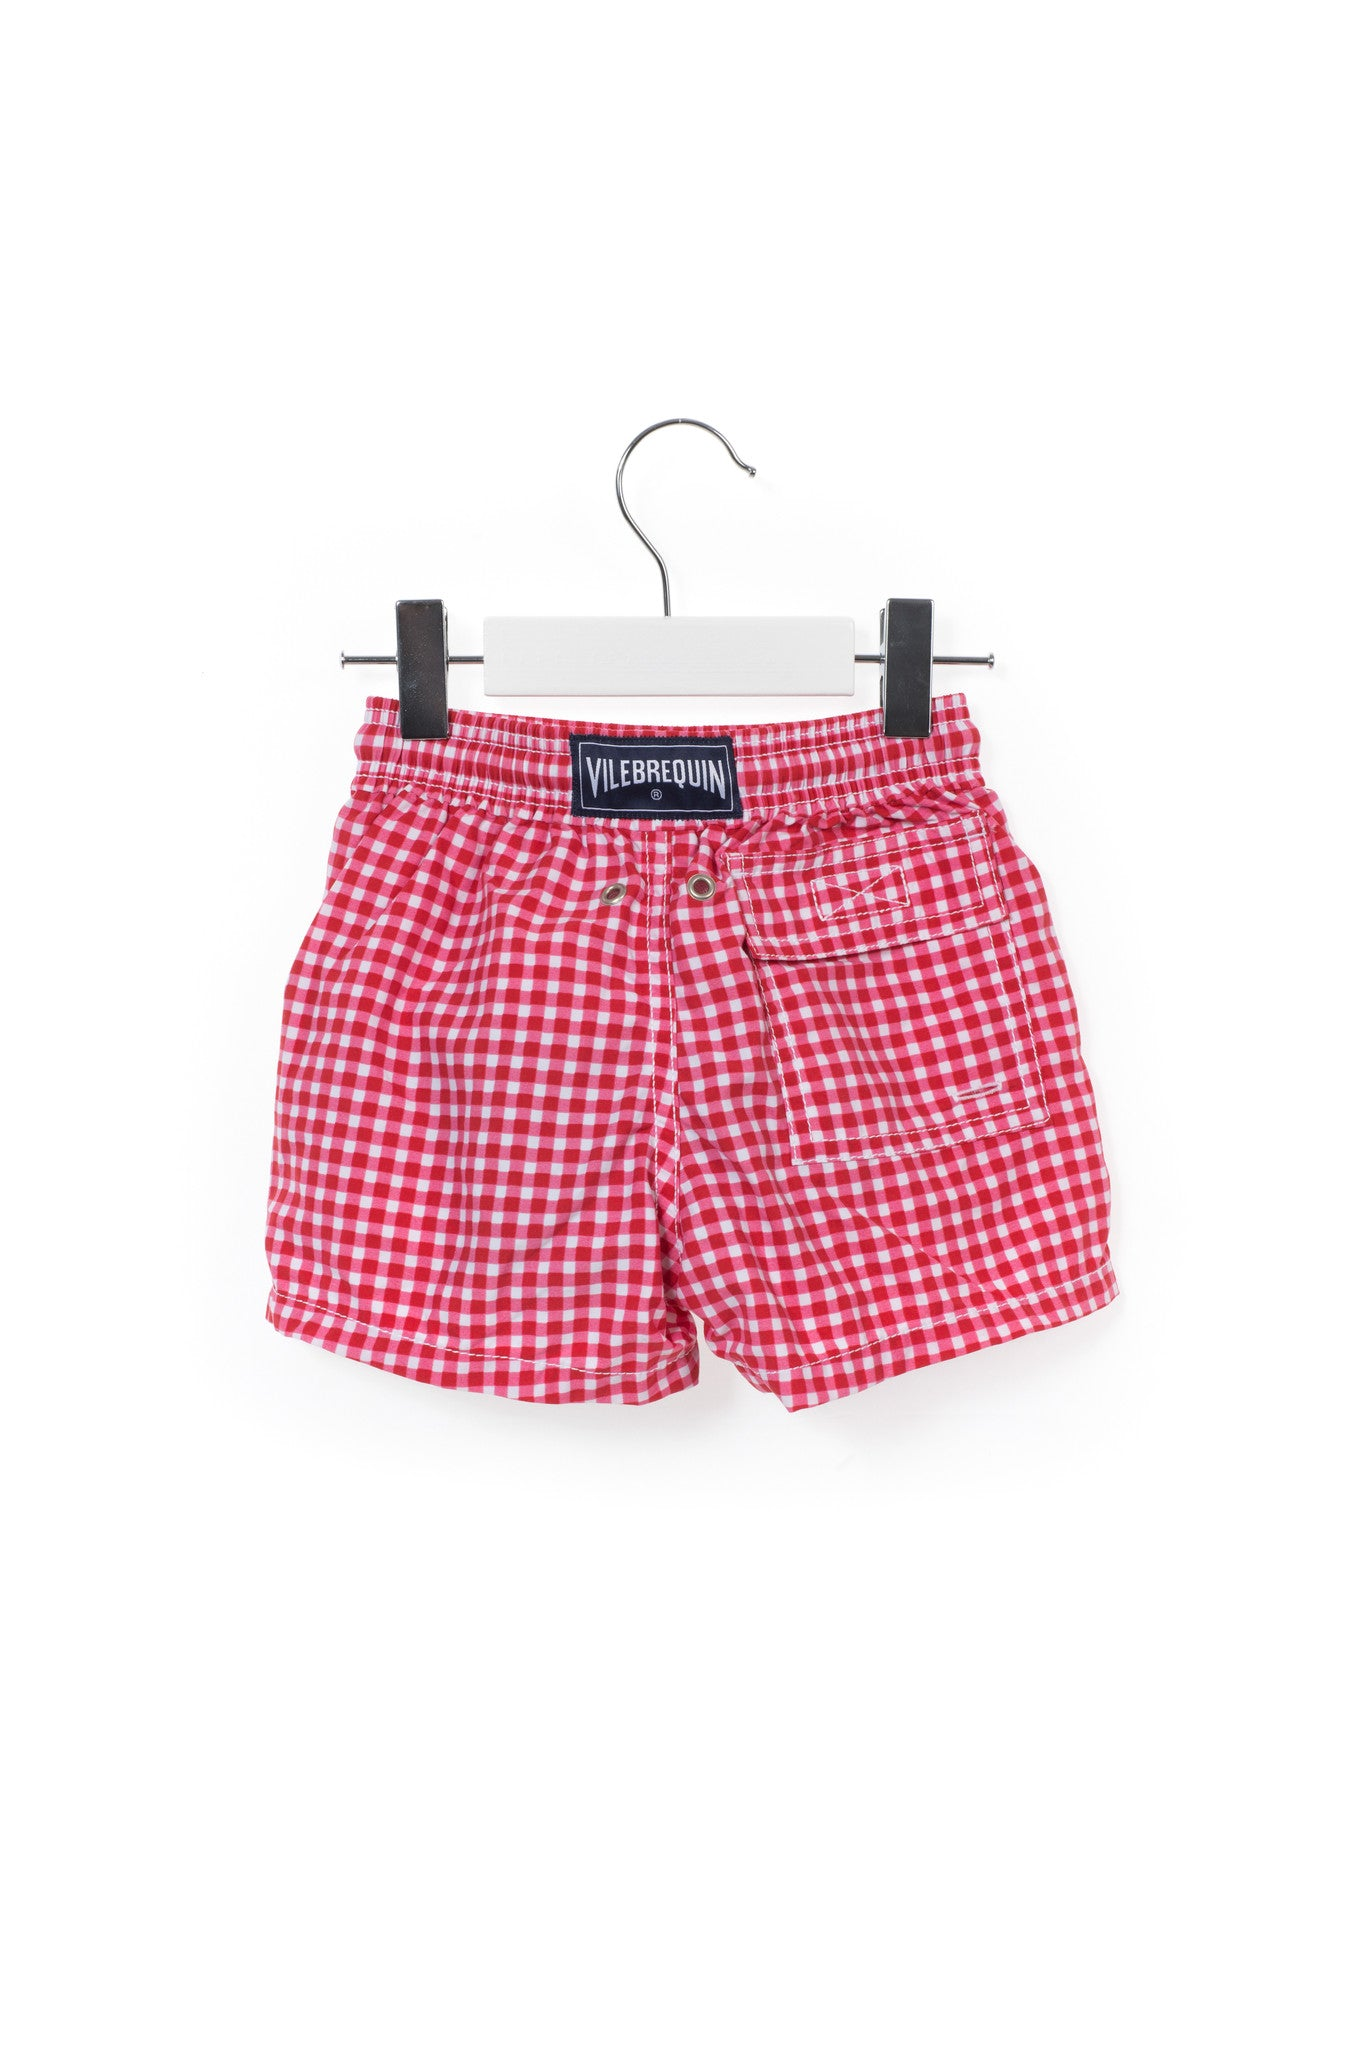 10001188 Vilebrequin Kids~Swimwear 2T at Retykle